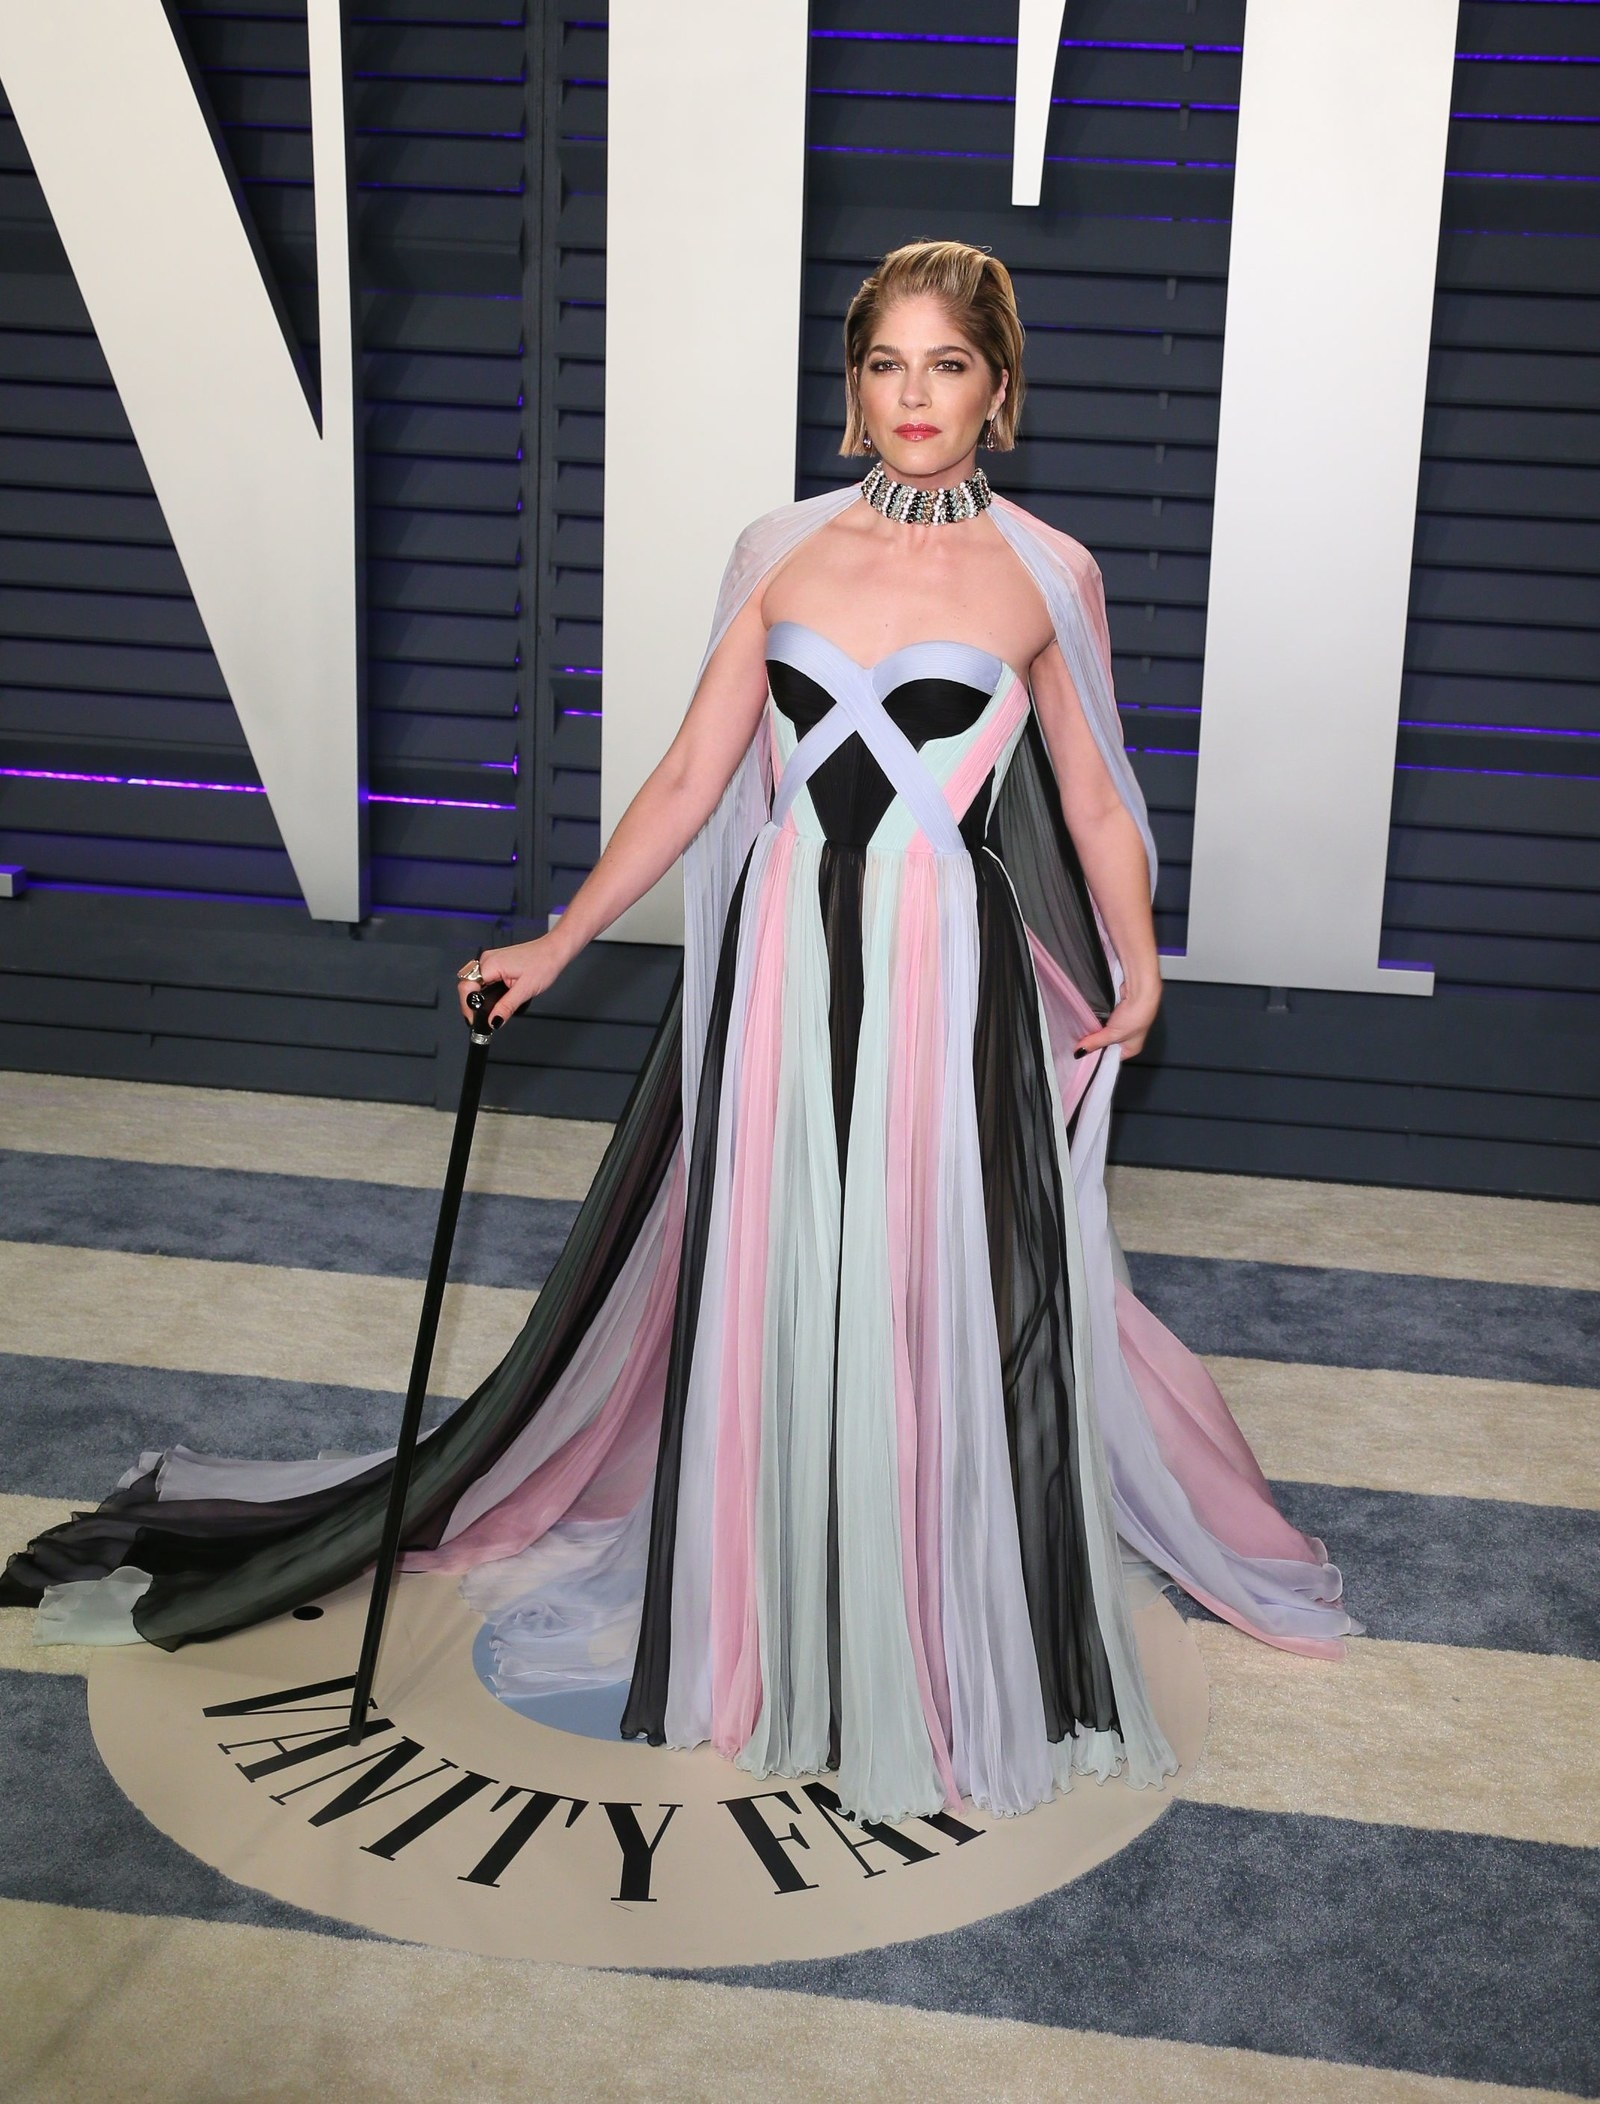 It was her first red carpet appearance since she announced her diagnosis.